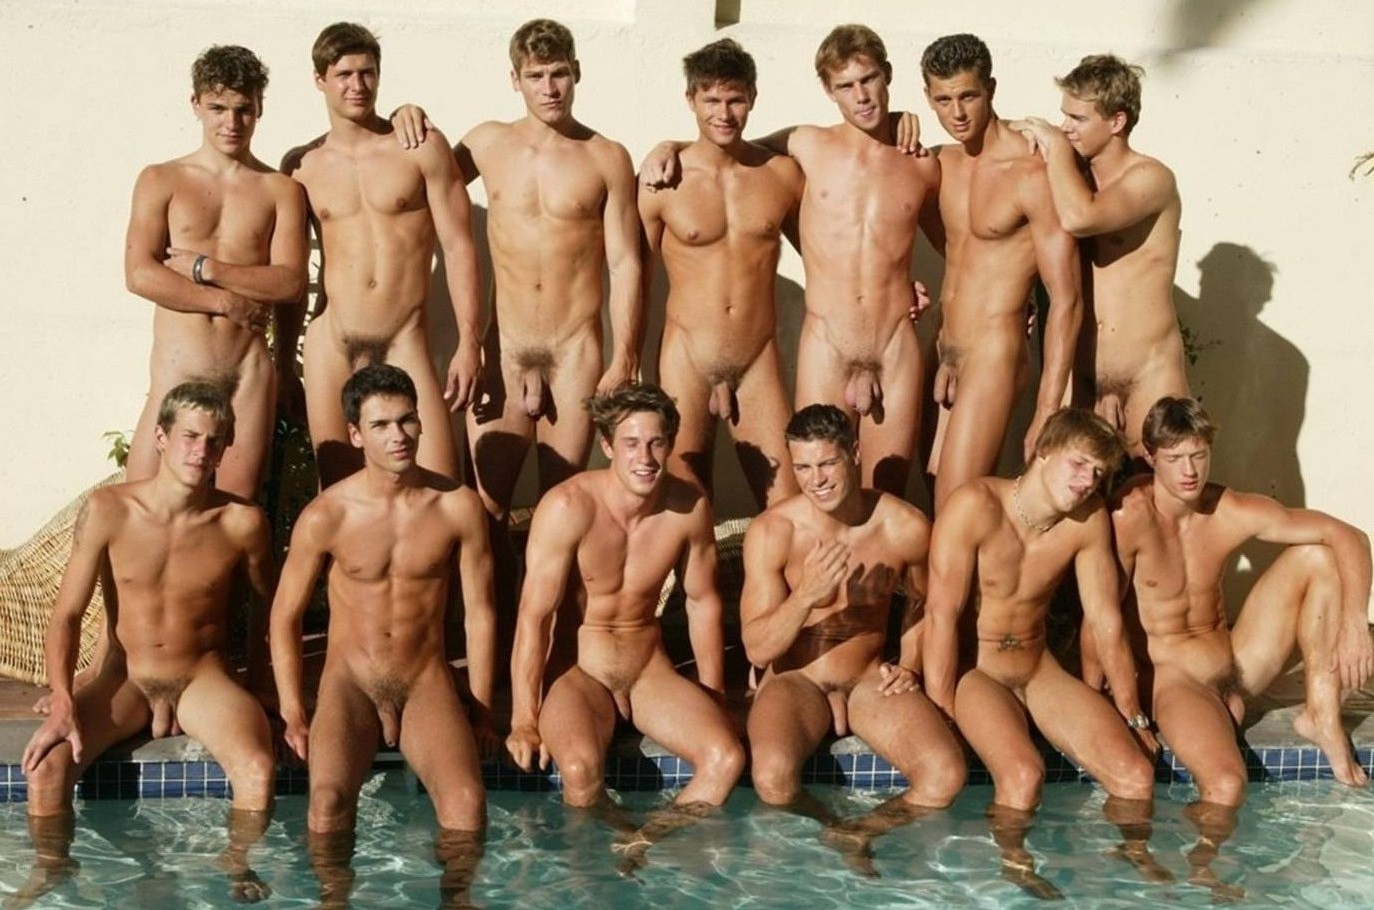 Only nude men group gay sex xxx as the 2